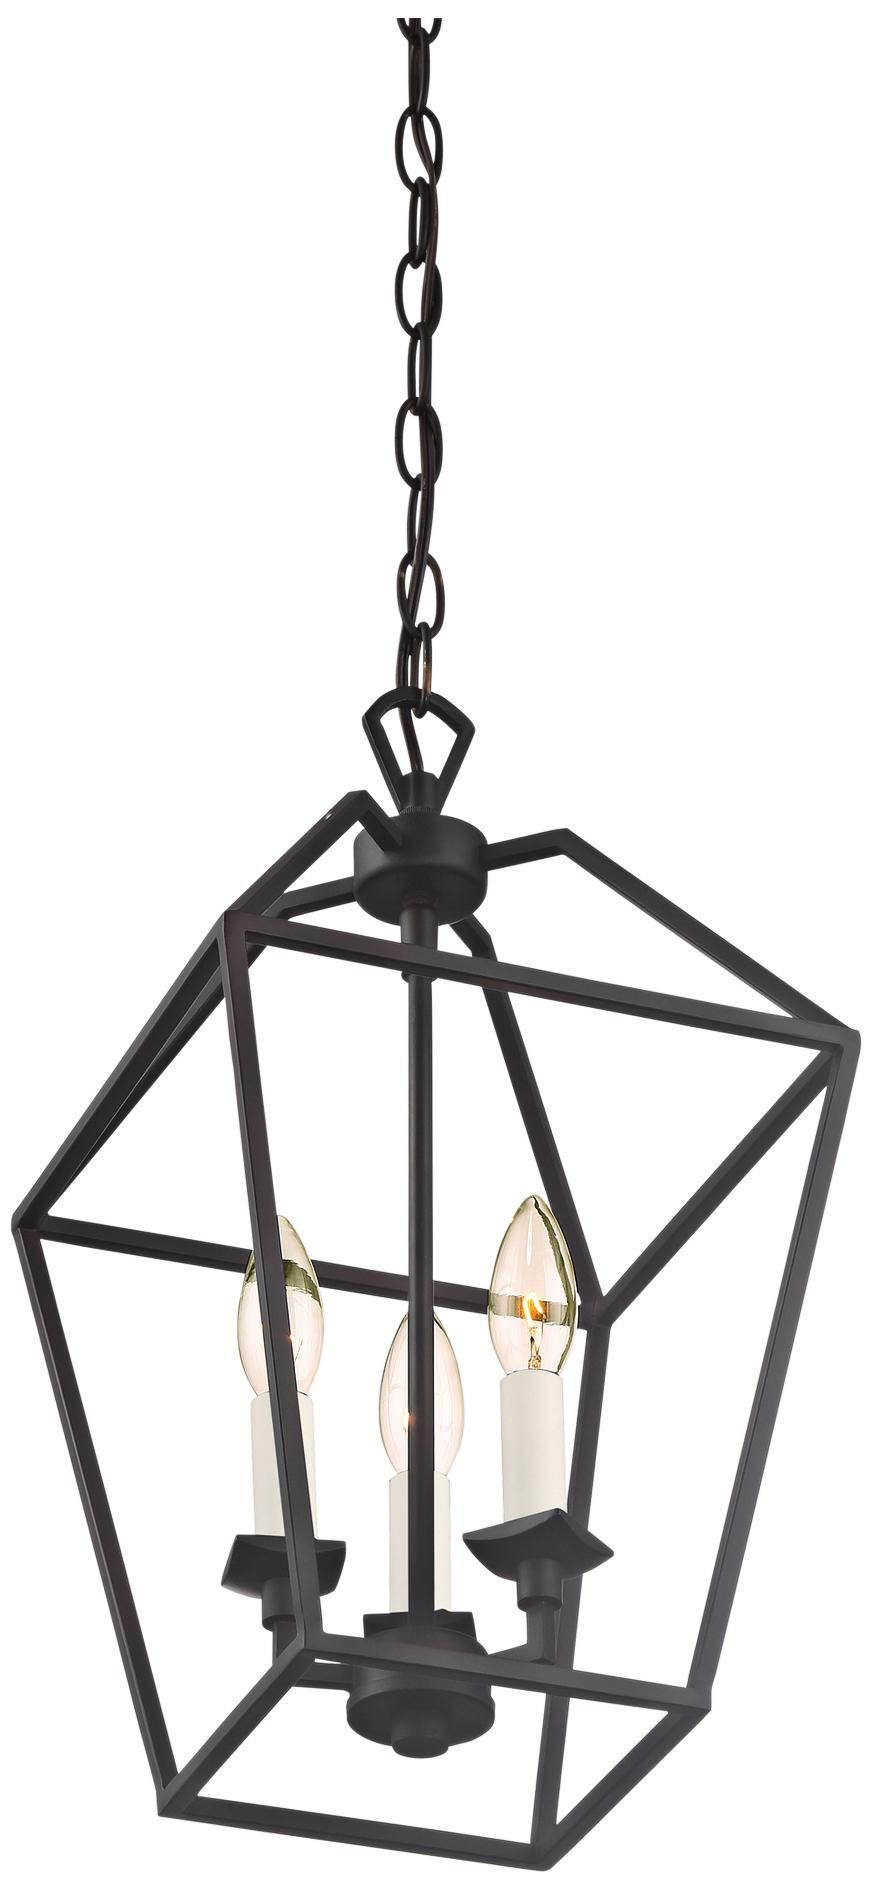 Quoizel aviary 9 12w bronze 3 light steel cage chandelier style quoizel aviary 9 12w bronze 3 light steel cage chandelier arubaitofo Image collections